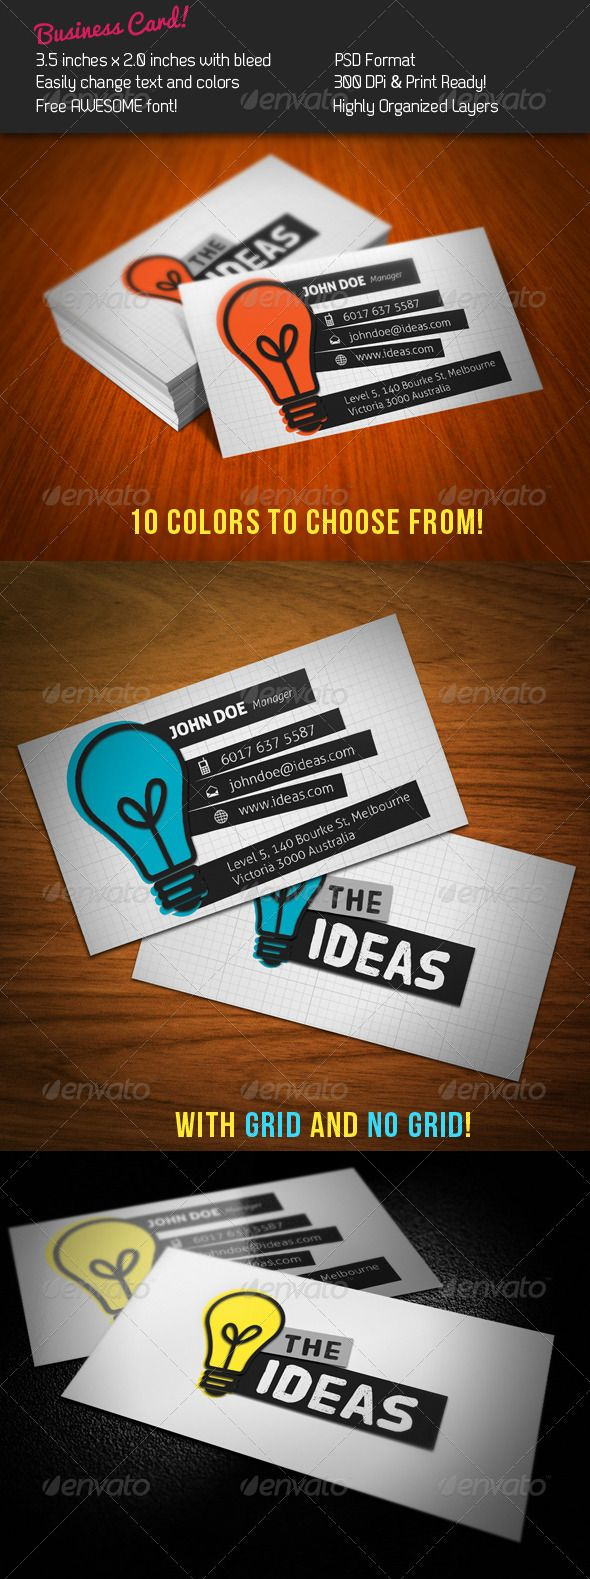 ideas business card - Graphic Design Business Ideas